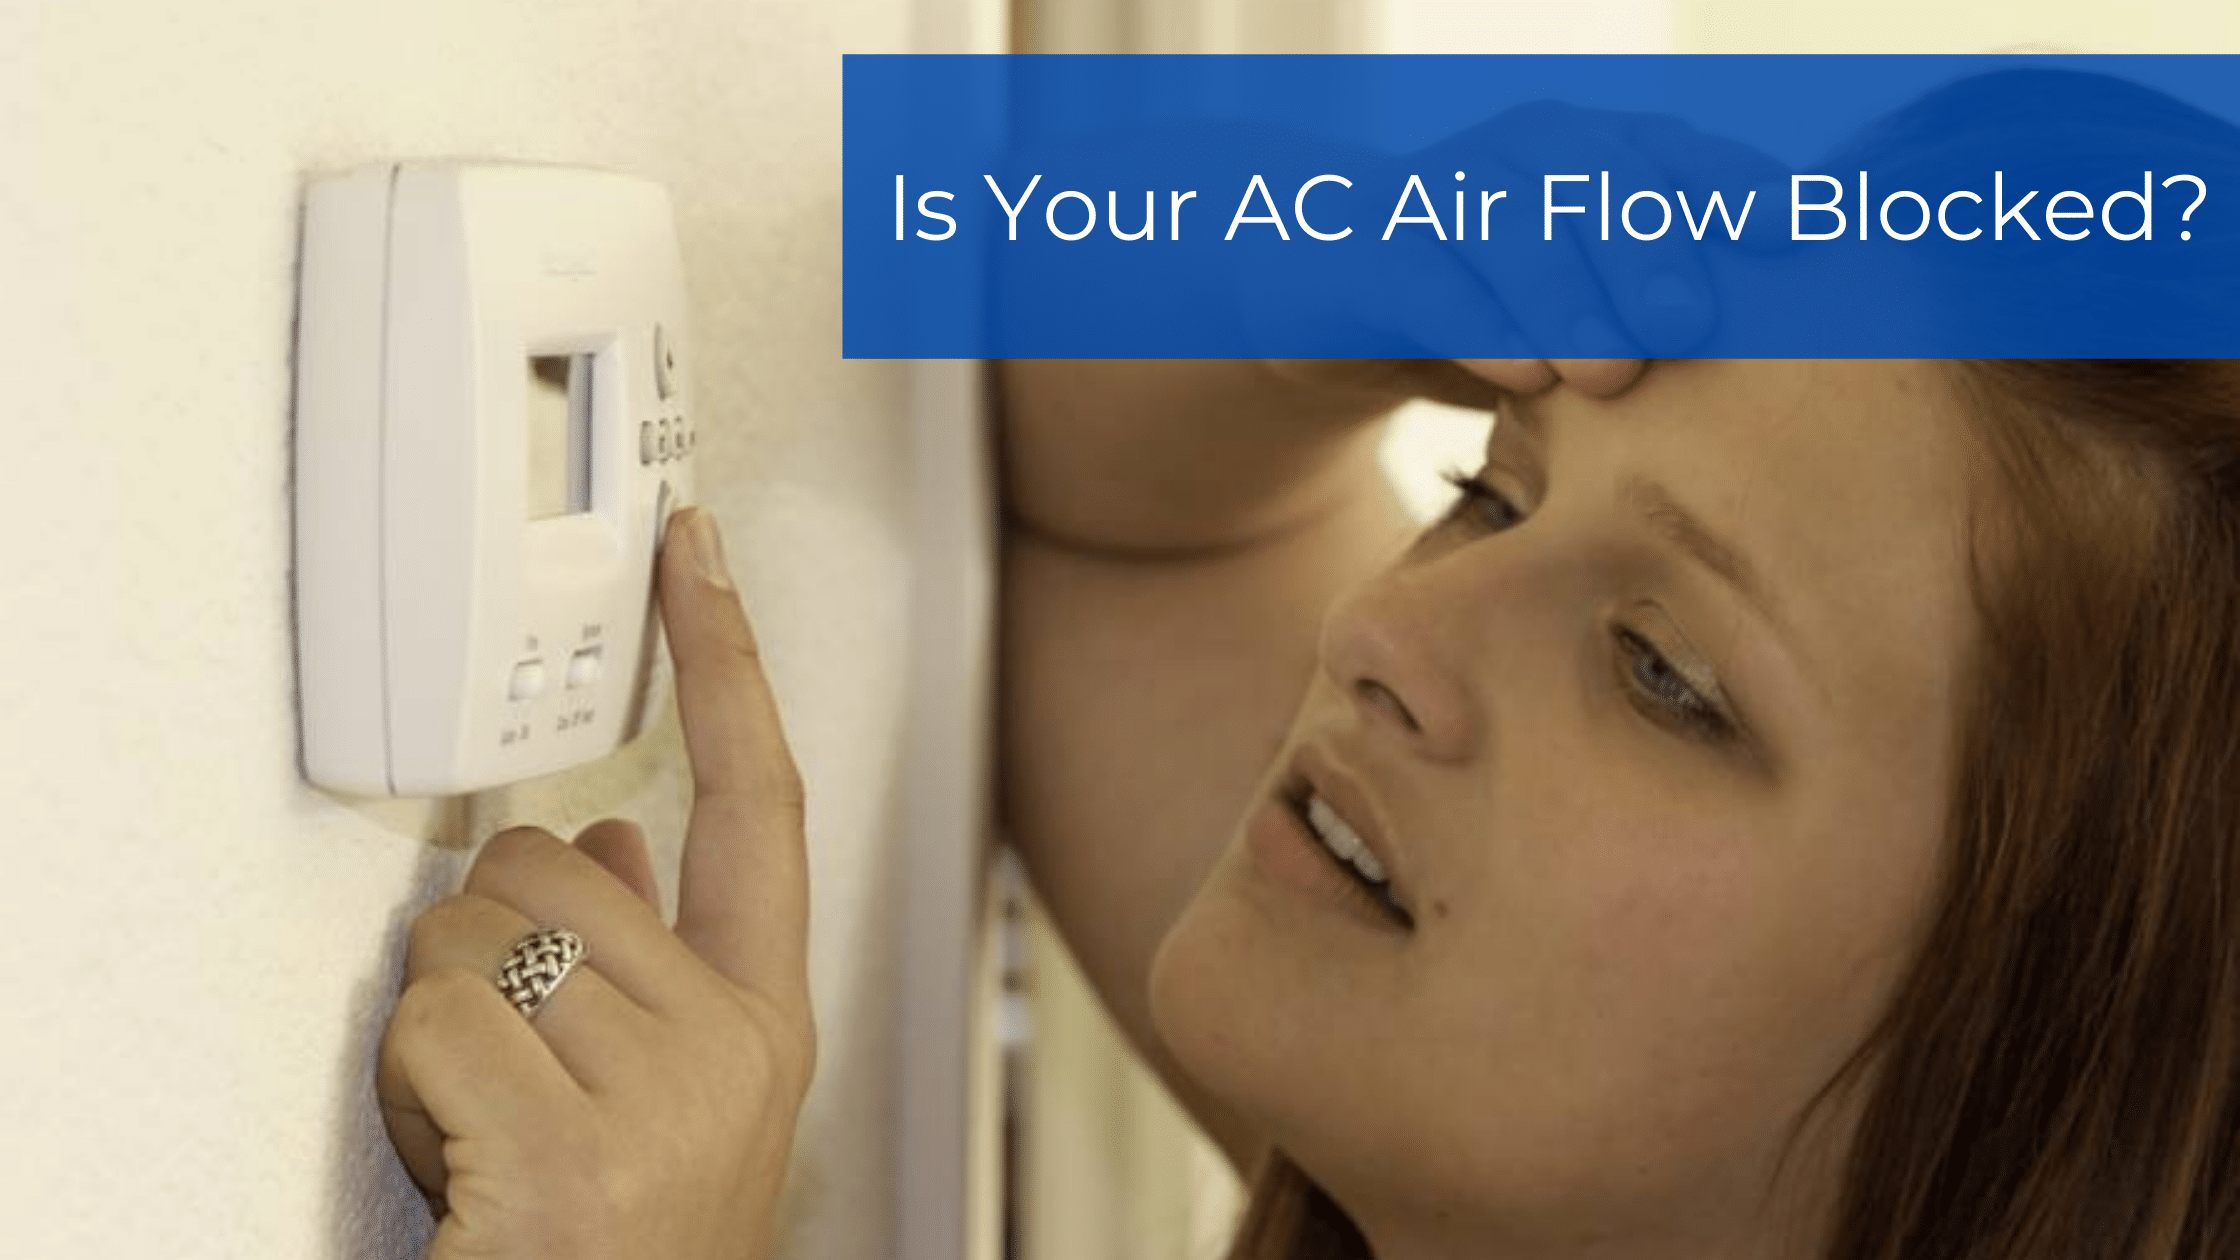 Is Your AC Air Flow Blocked